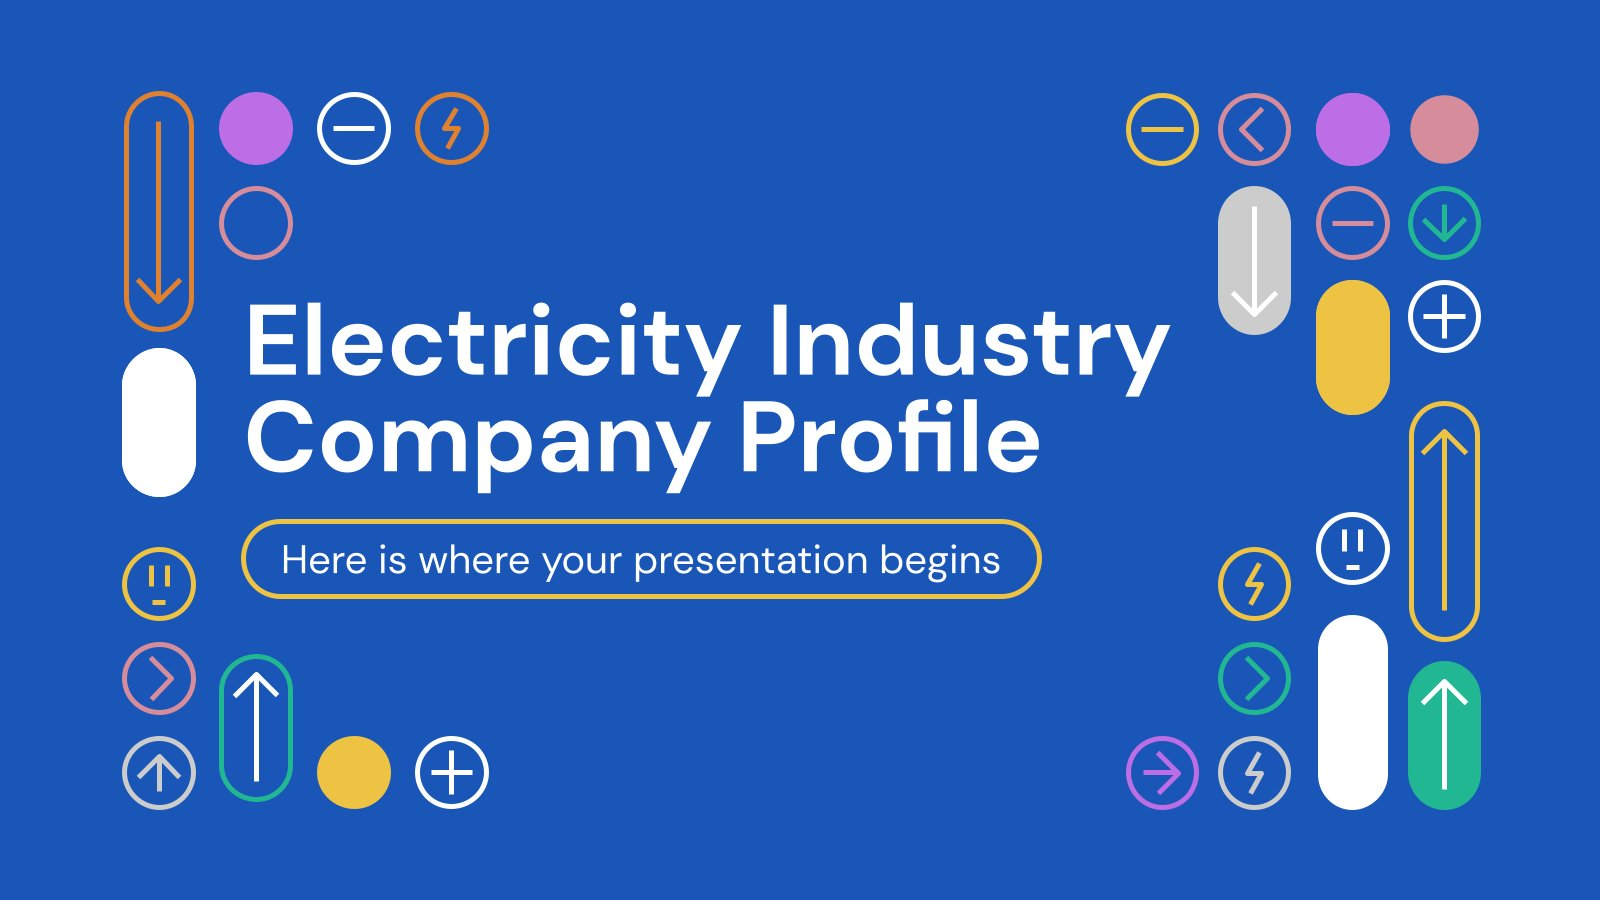 Electricity Industry Company Profile presentation template